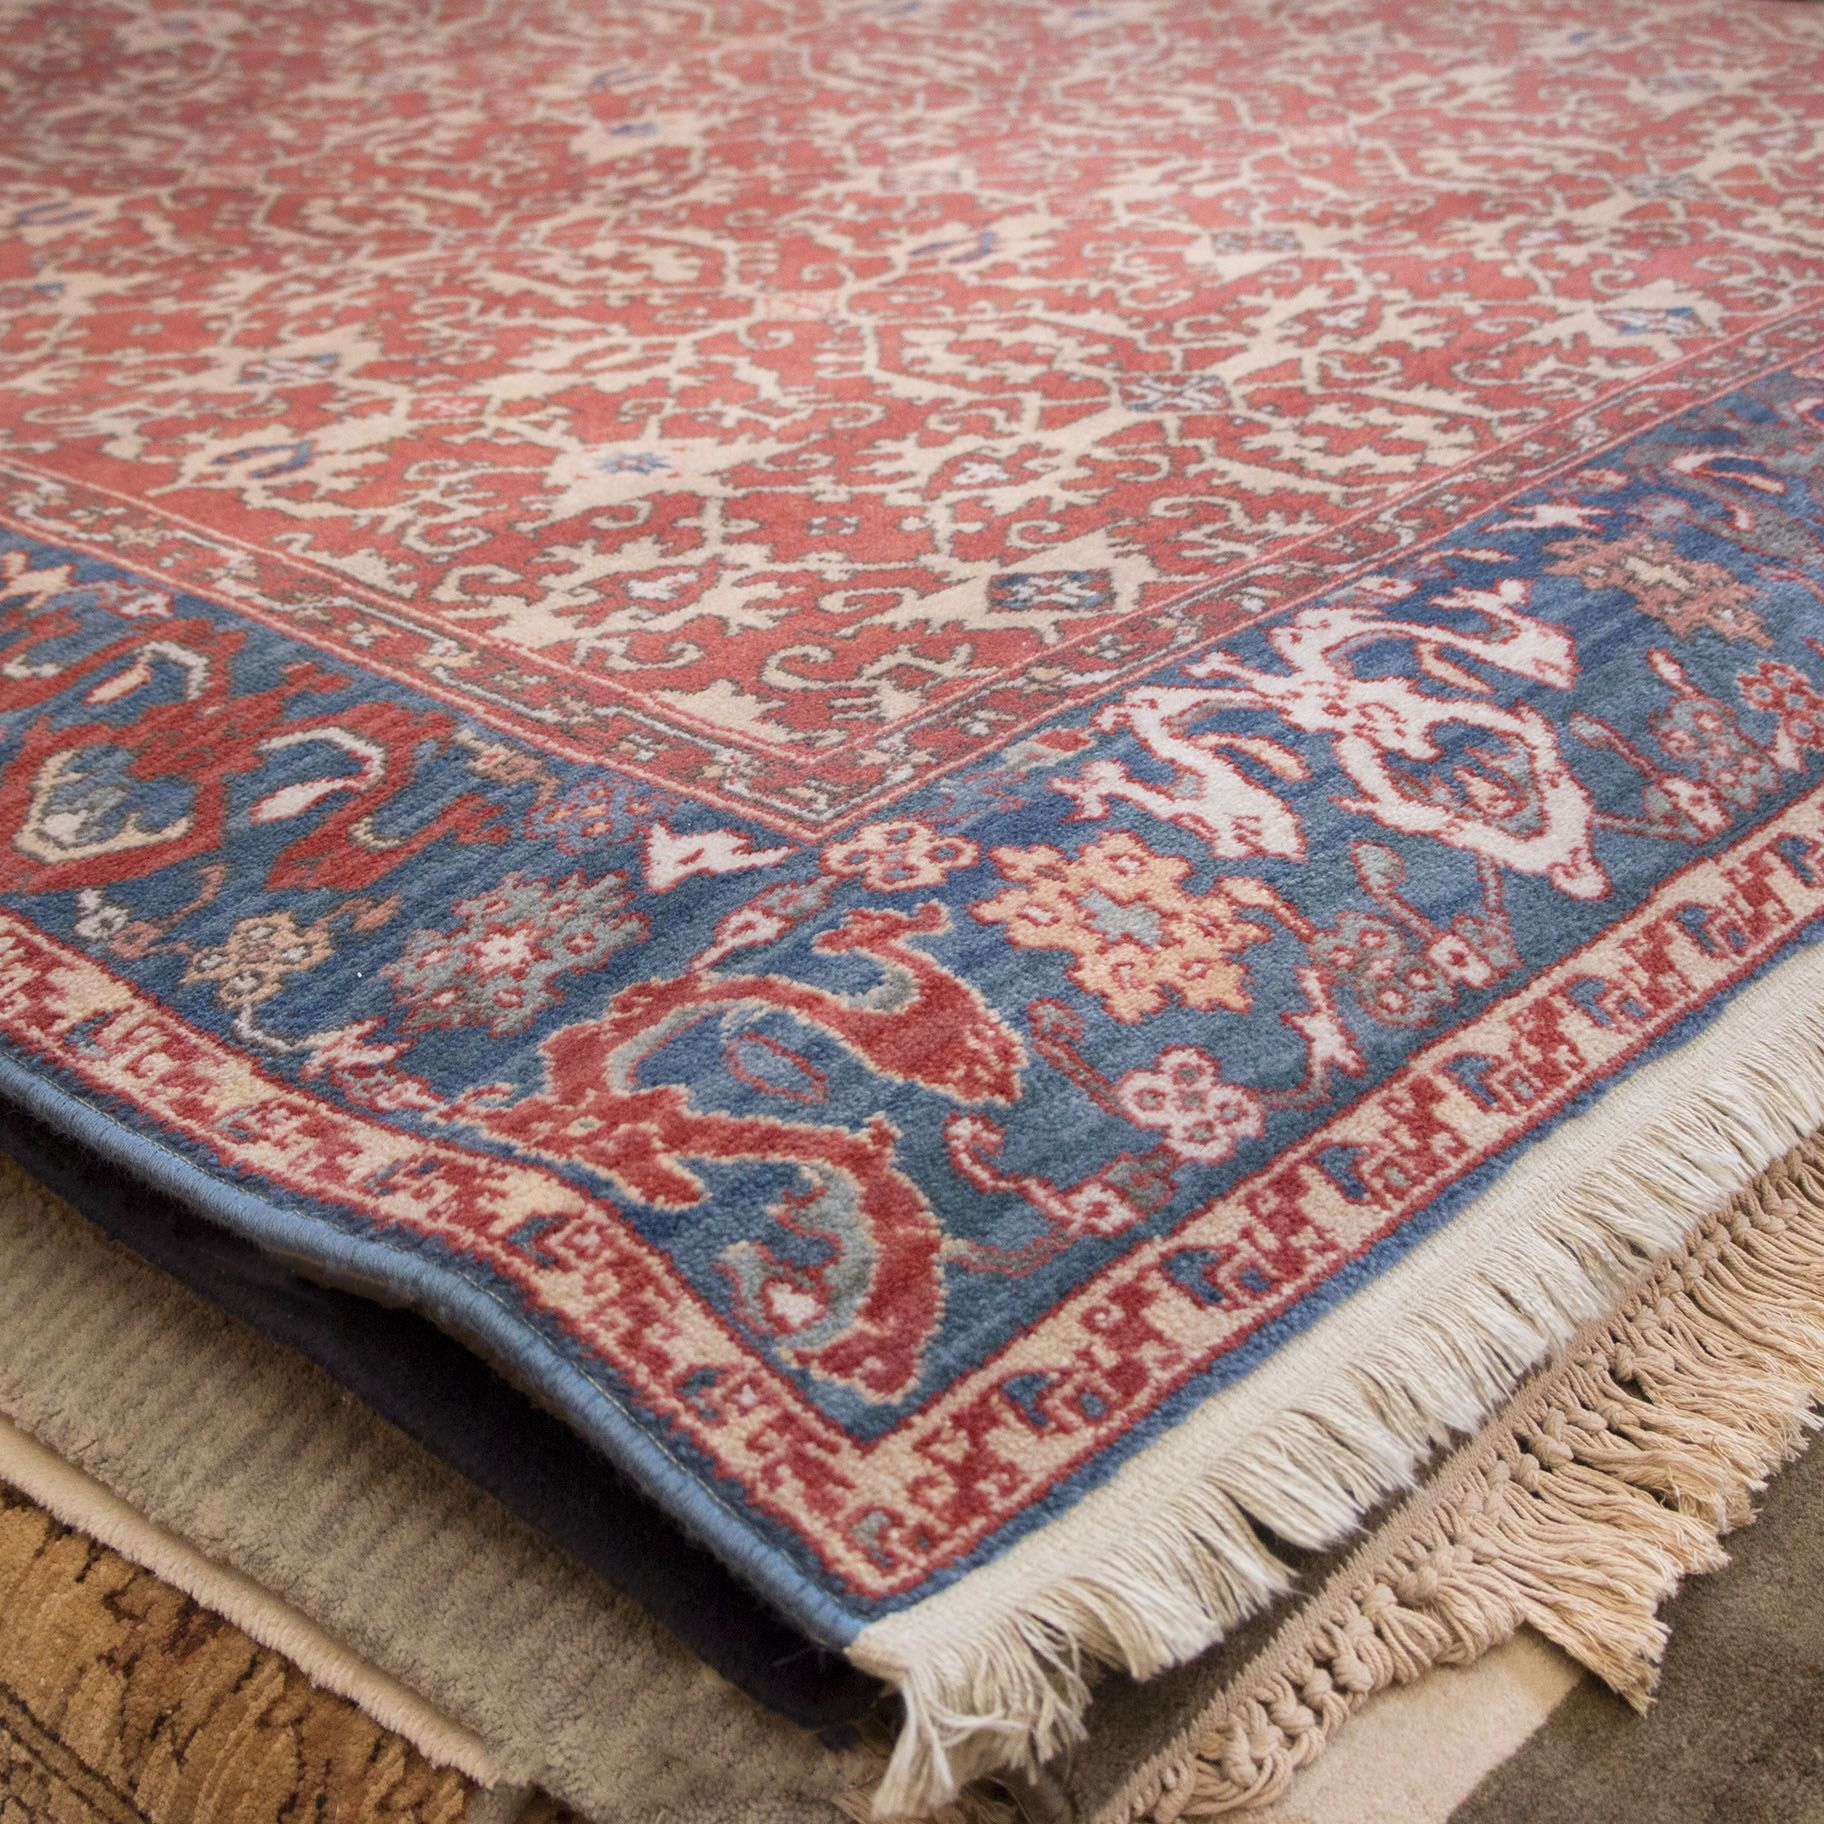 Karastan Williamsburg Ushak Area Rug In